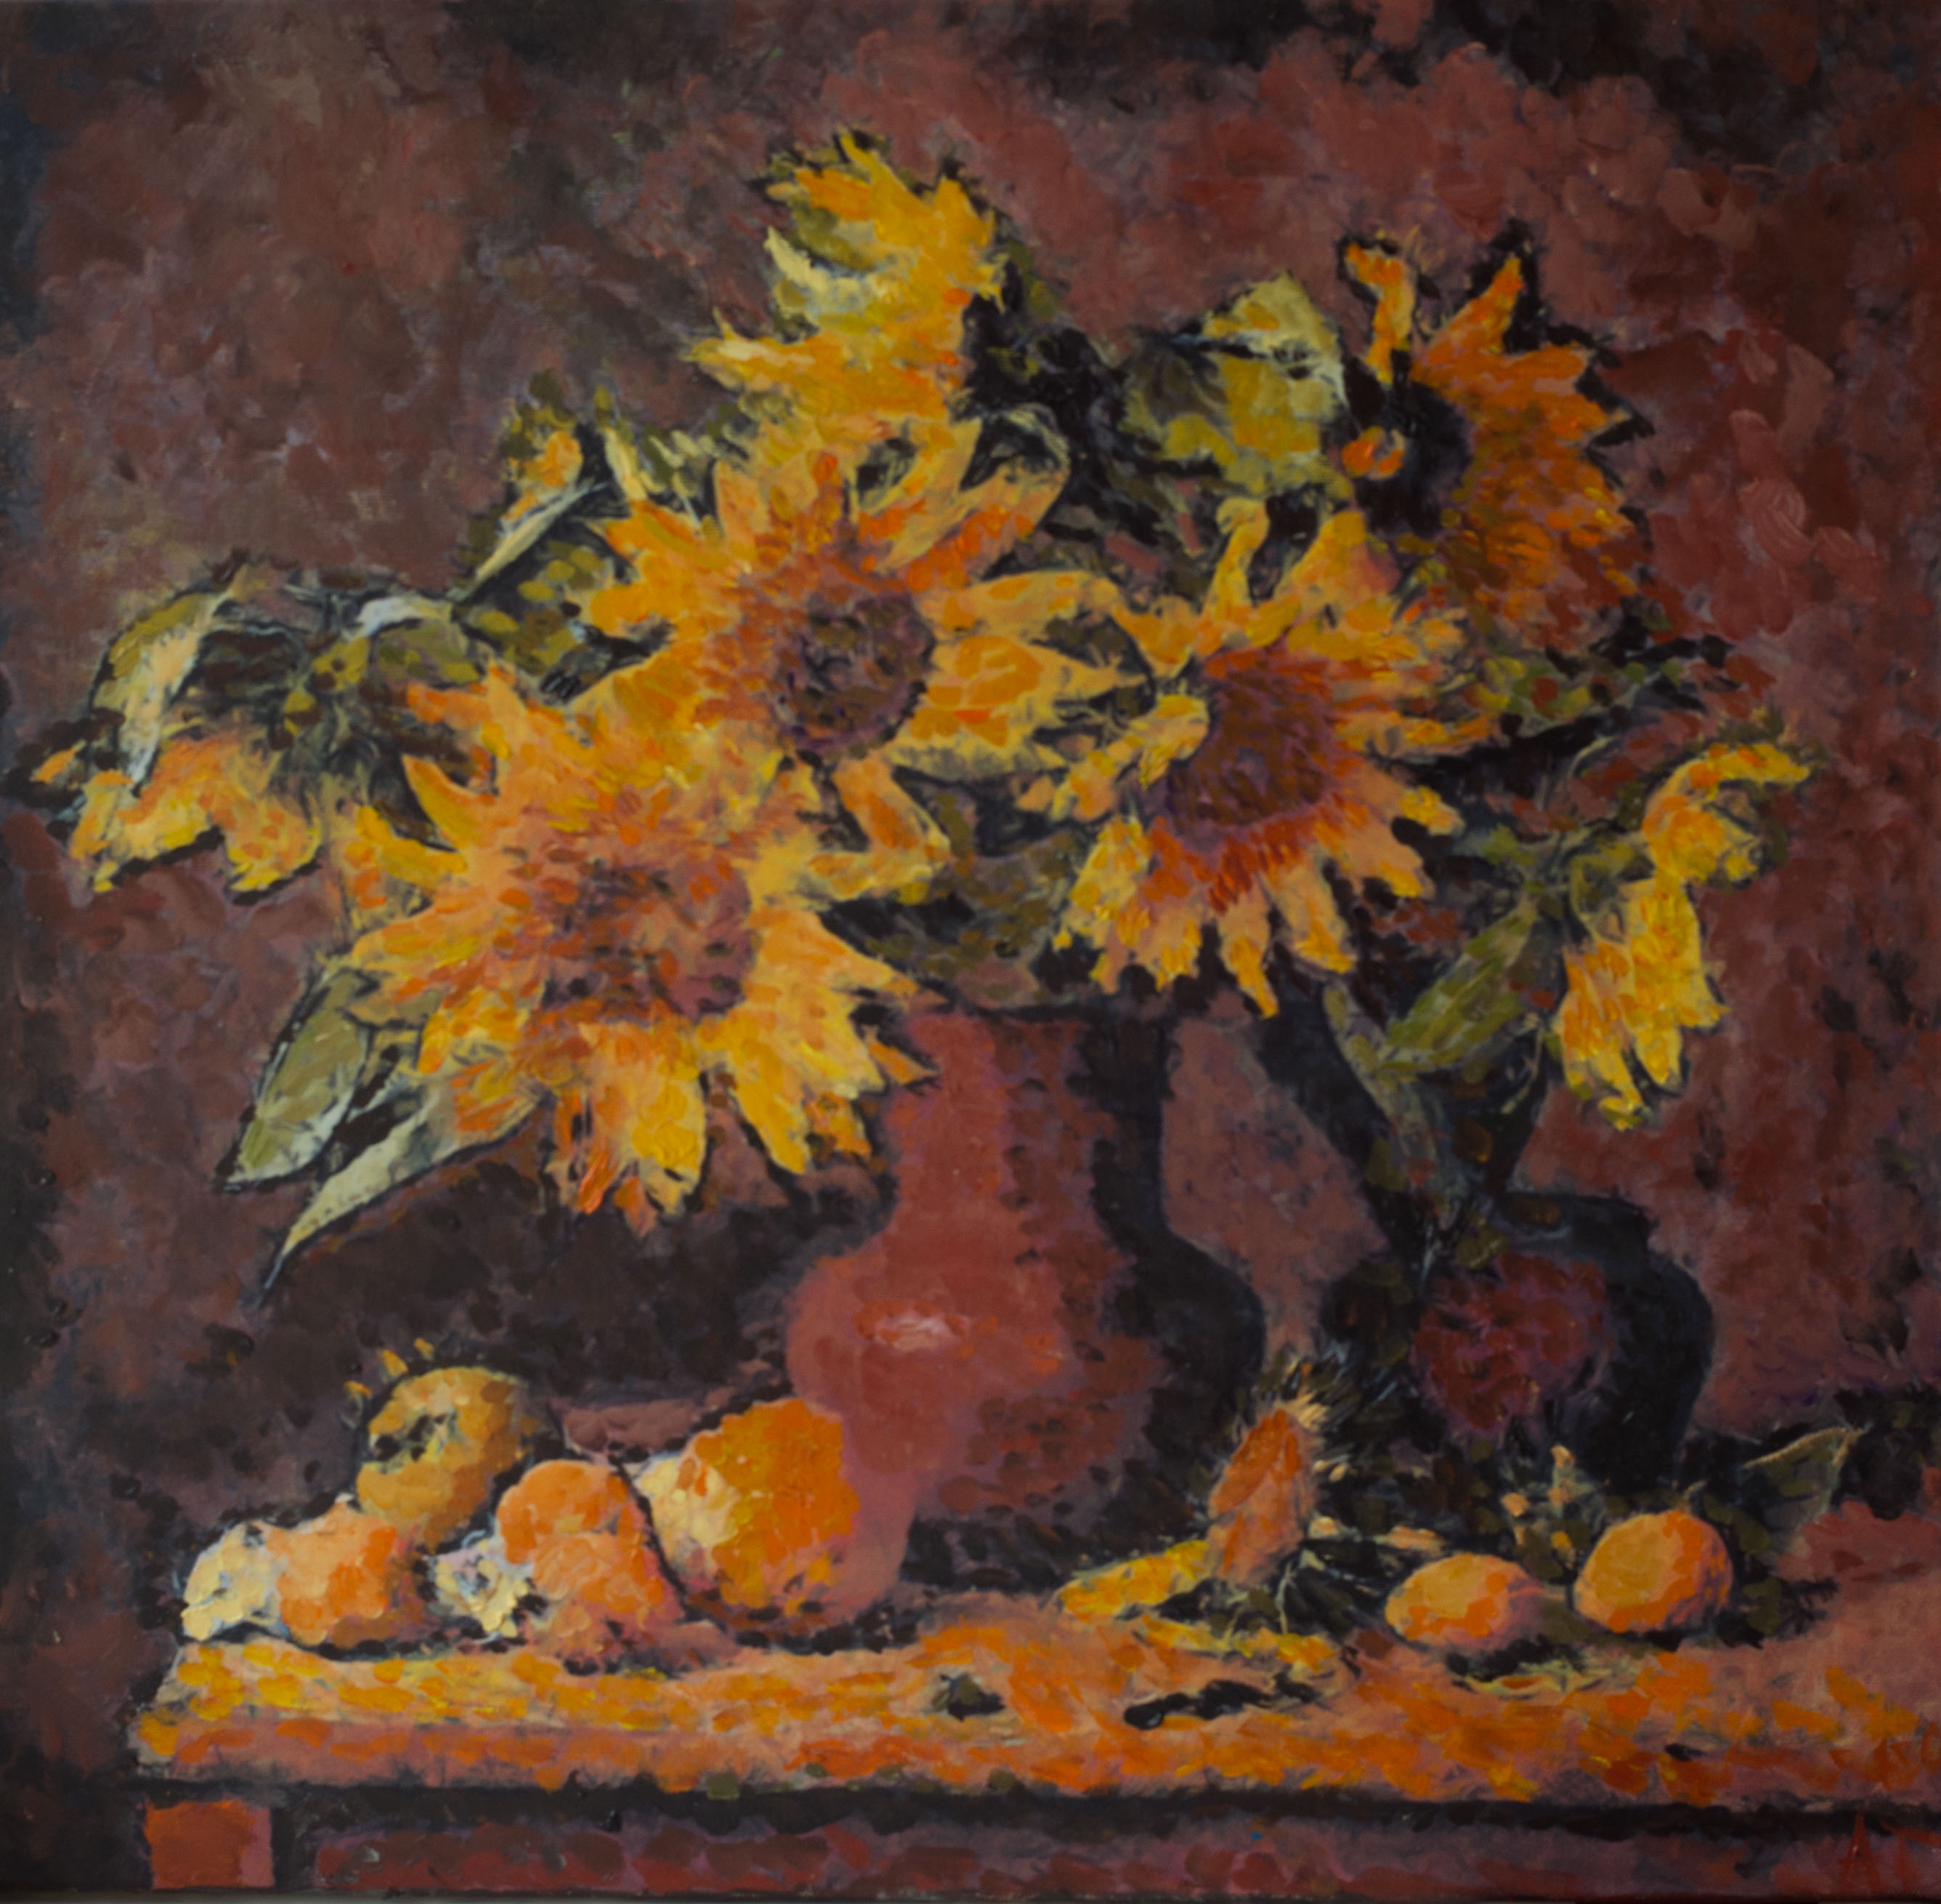 Sunflowers, A. Lefbard, 2013